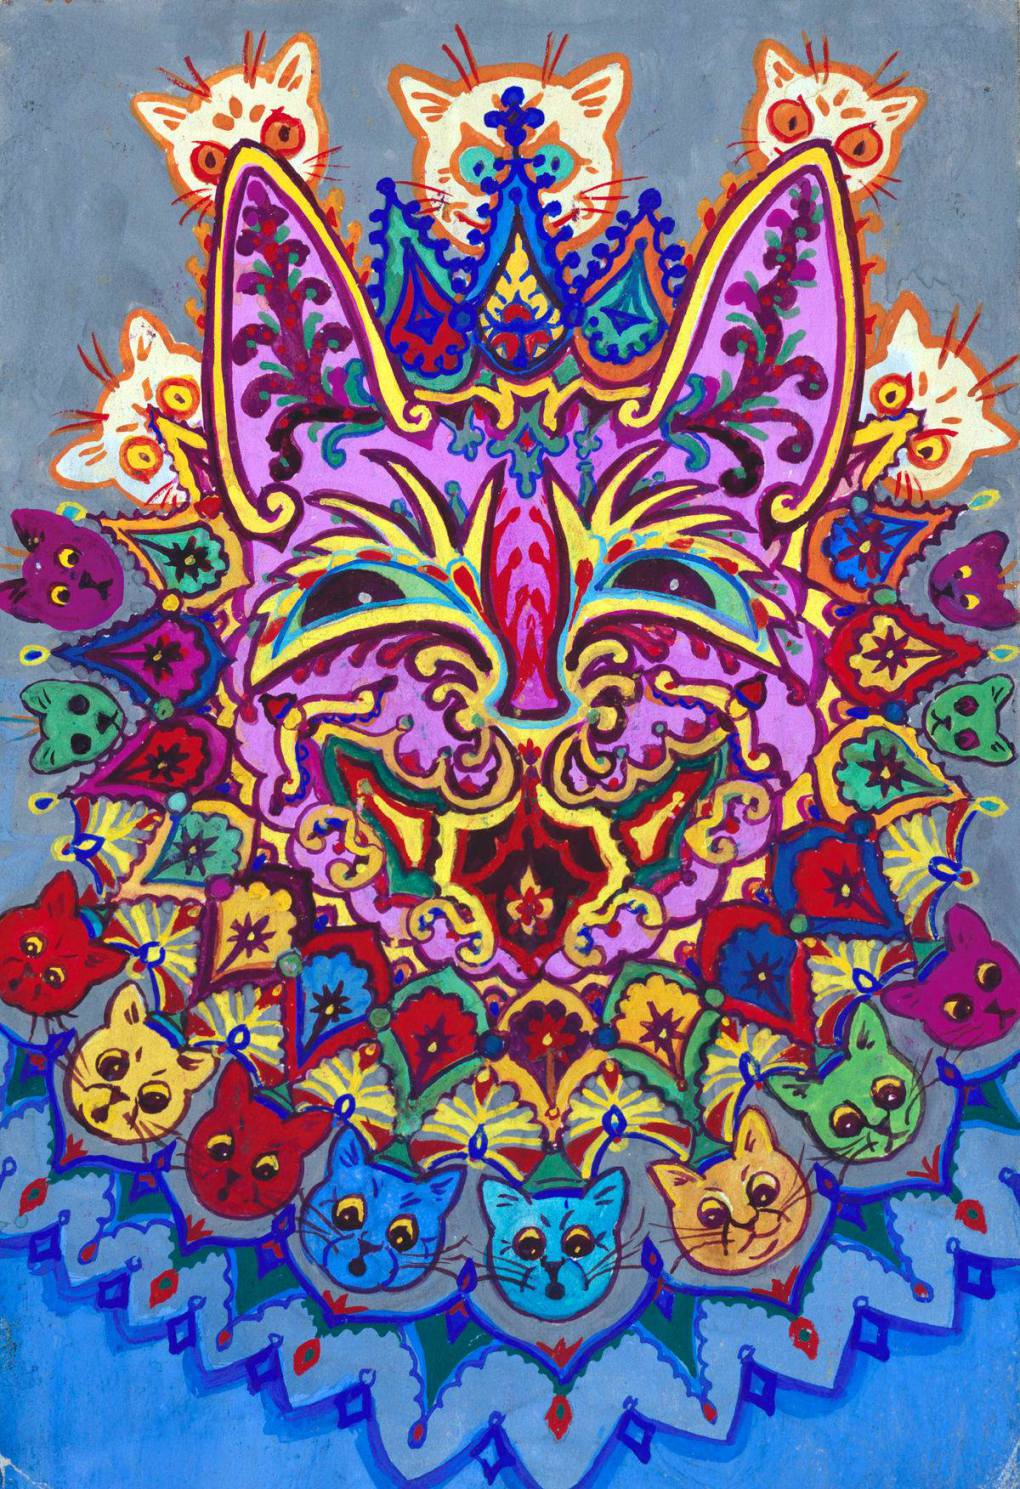 Louis Wain The Man Who Drew Millions Of Far Out Cats